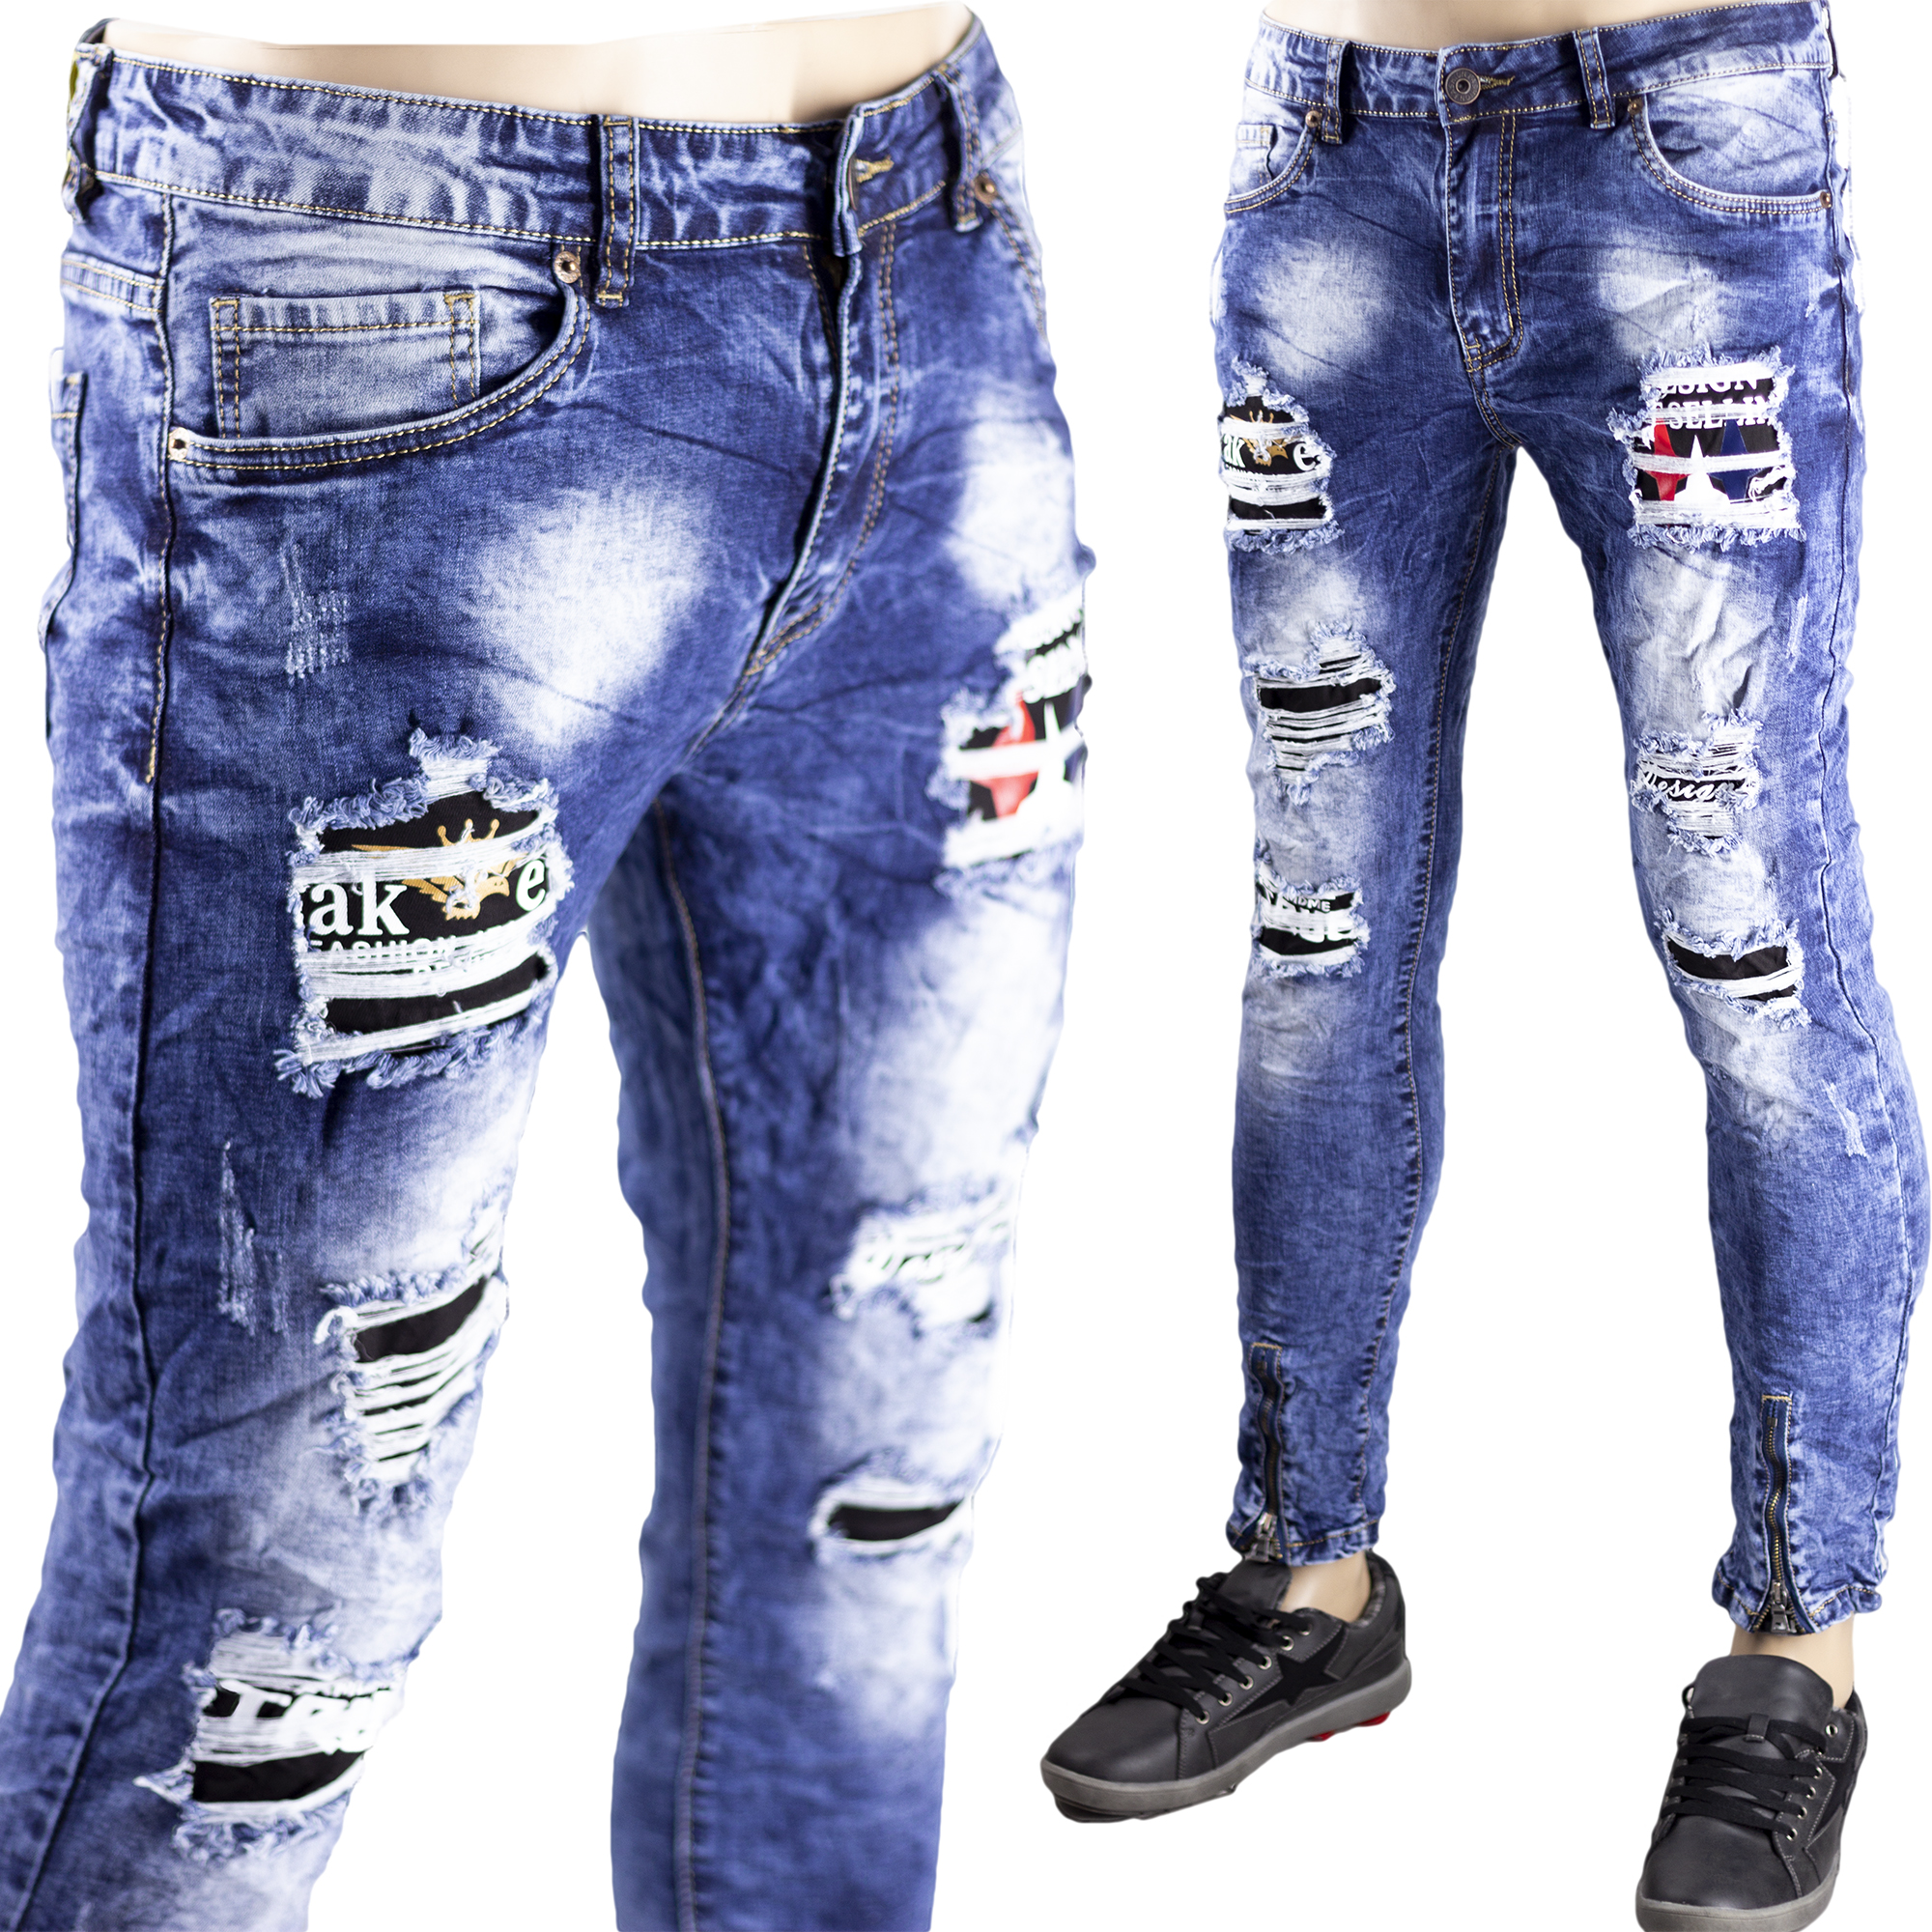 novelty Extremely important land  Jeans Strappati Slim Fit Pantaloni Uomo Aderenti Elastici Toppe Sfilacciato  Blu - RUSH Store